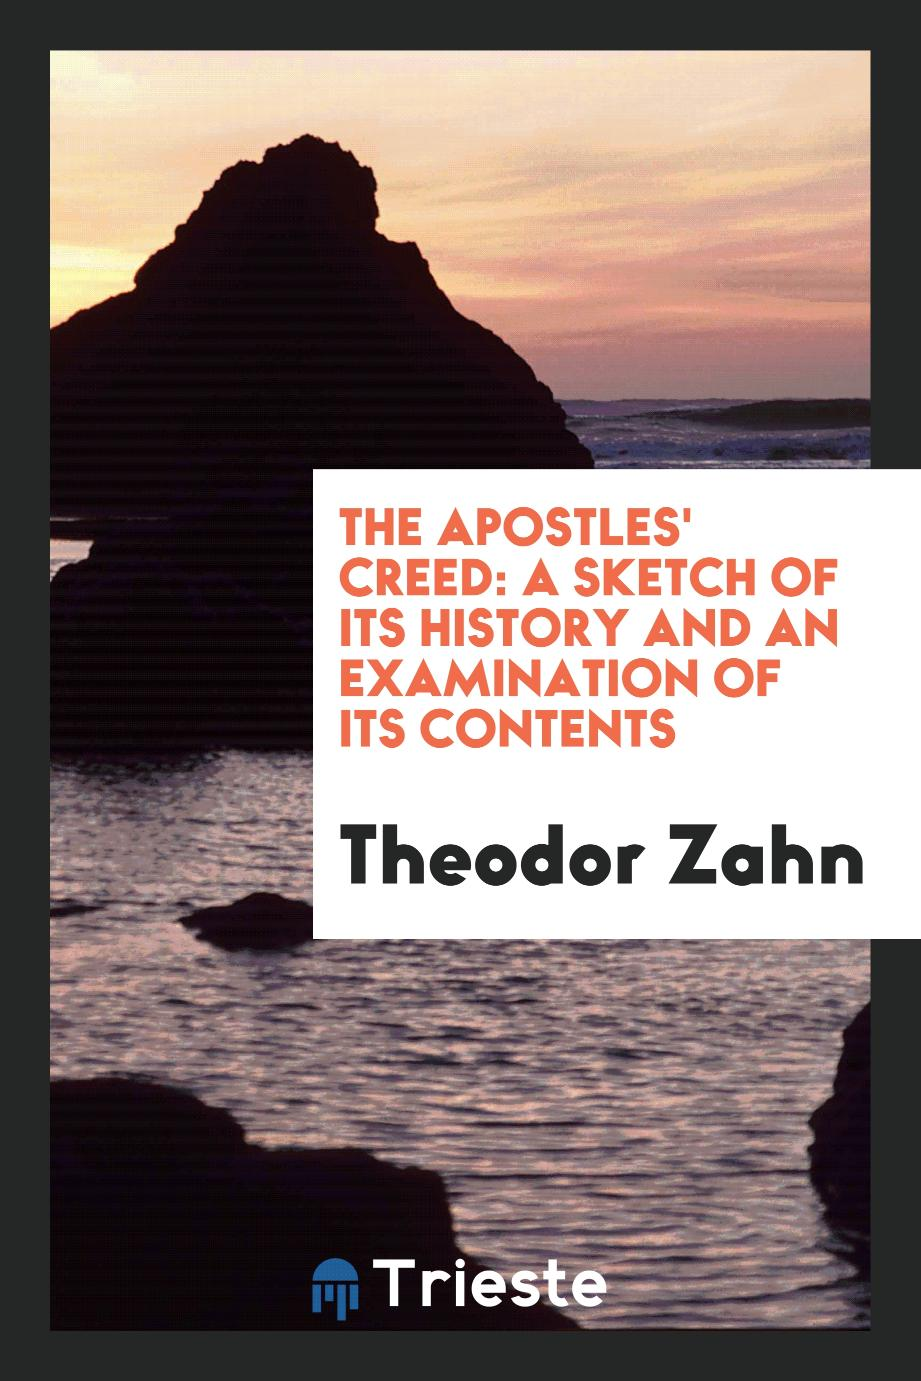 The Apostles' Creed: A Sketch of Its History and an Examination of Its Contents